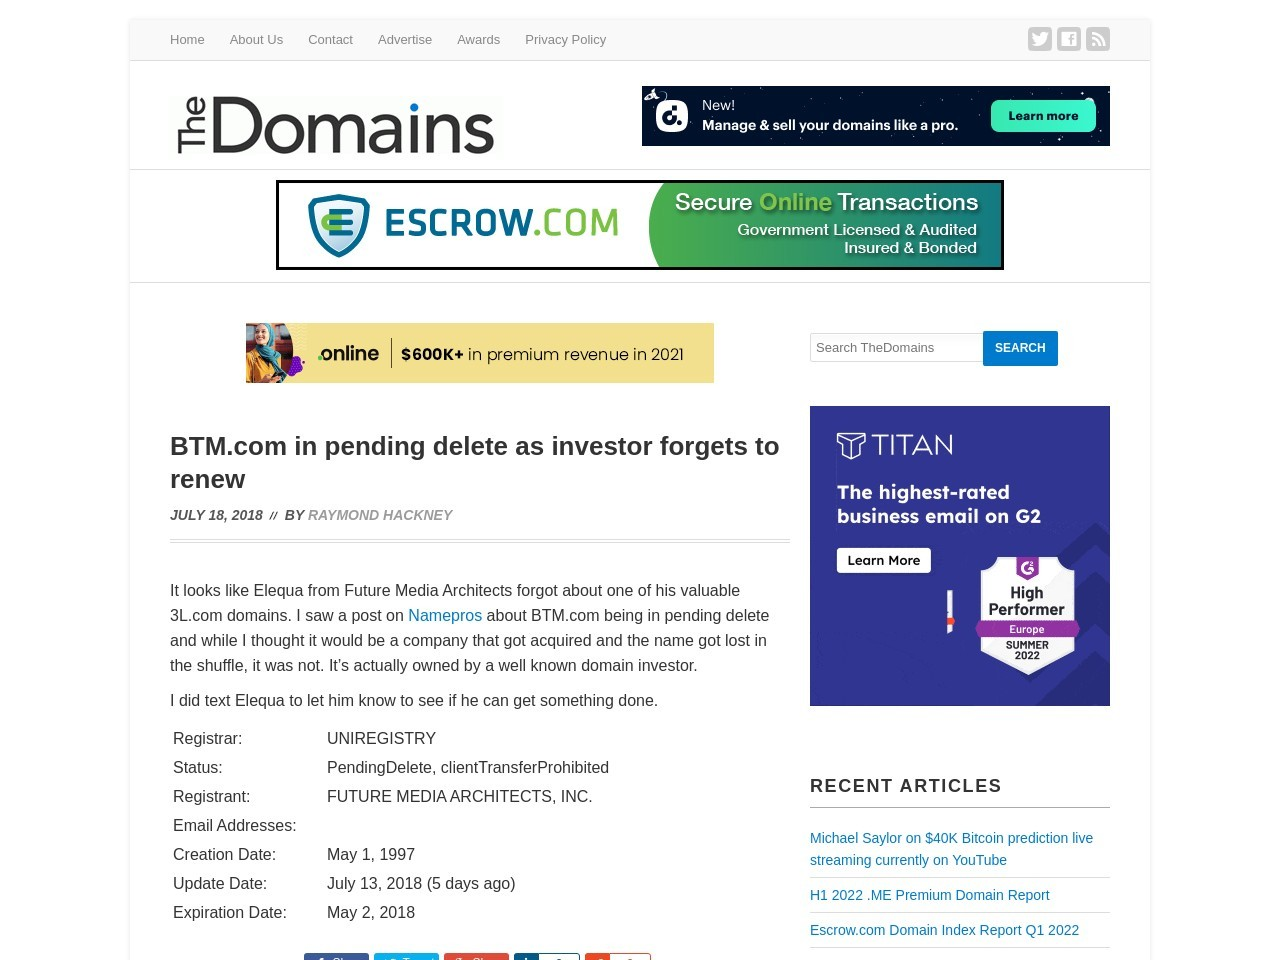 BTM.com in pending delete as investor forgets to renew